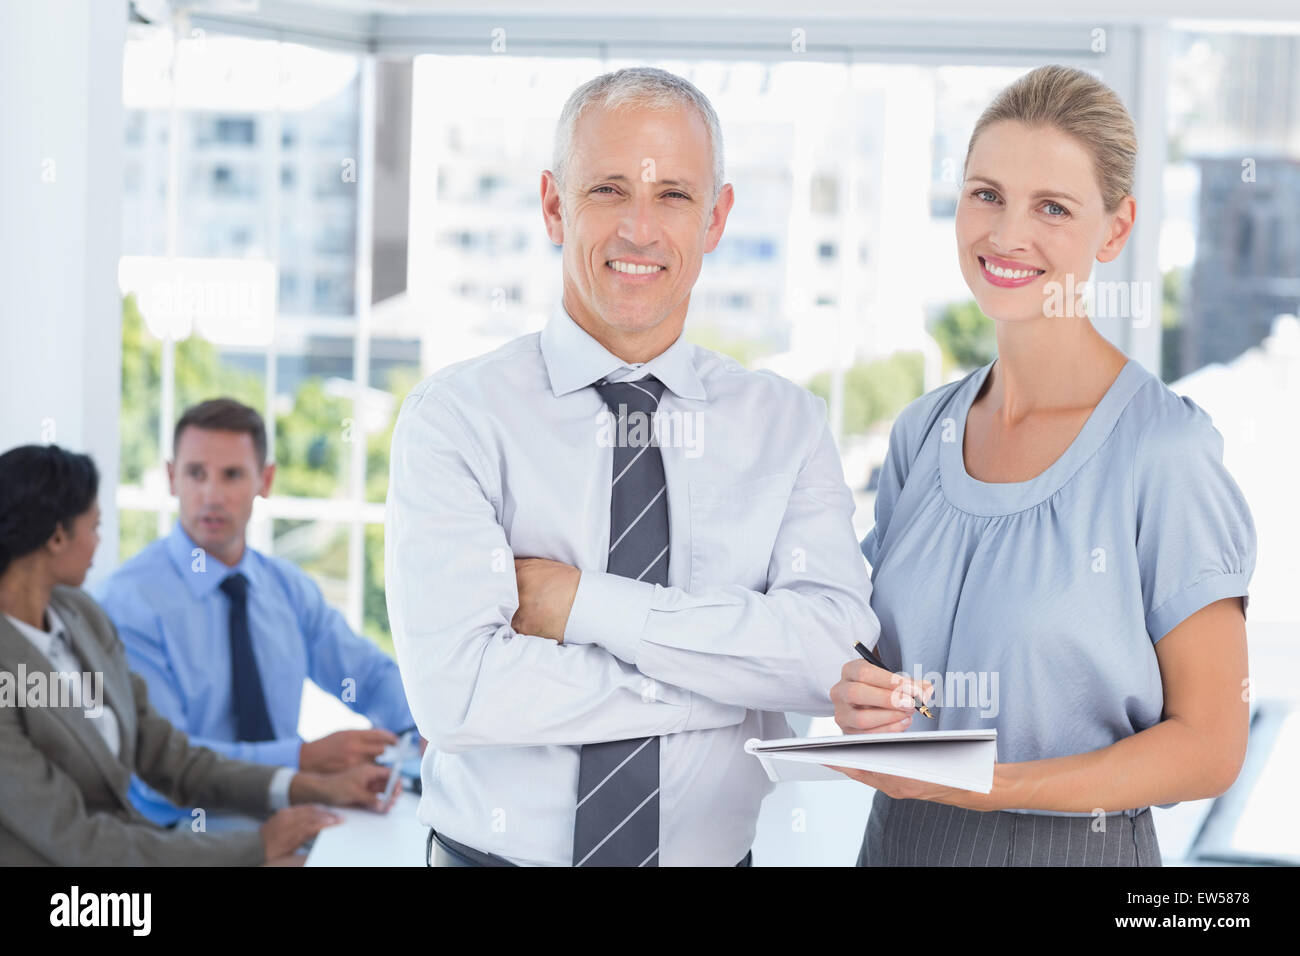 Colleagues speaking about work - Stock Image